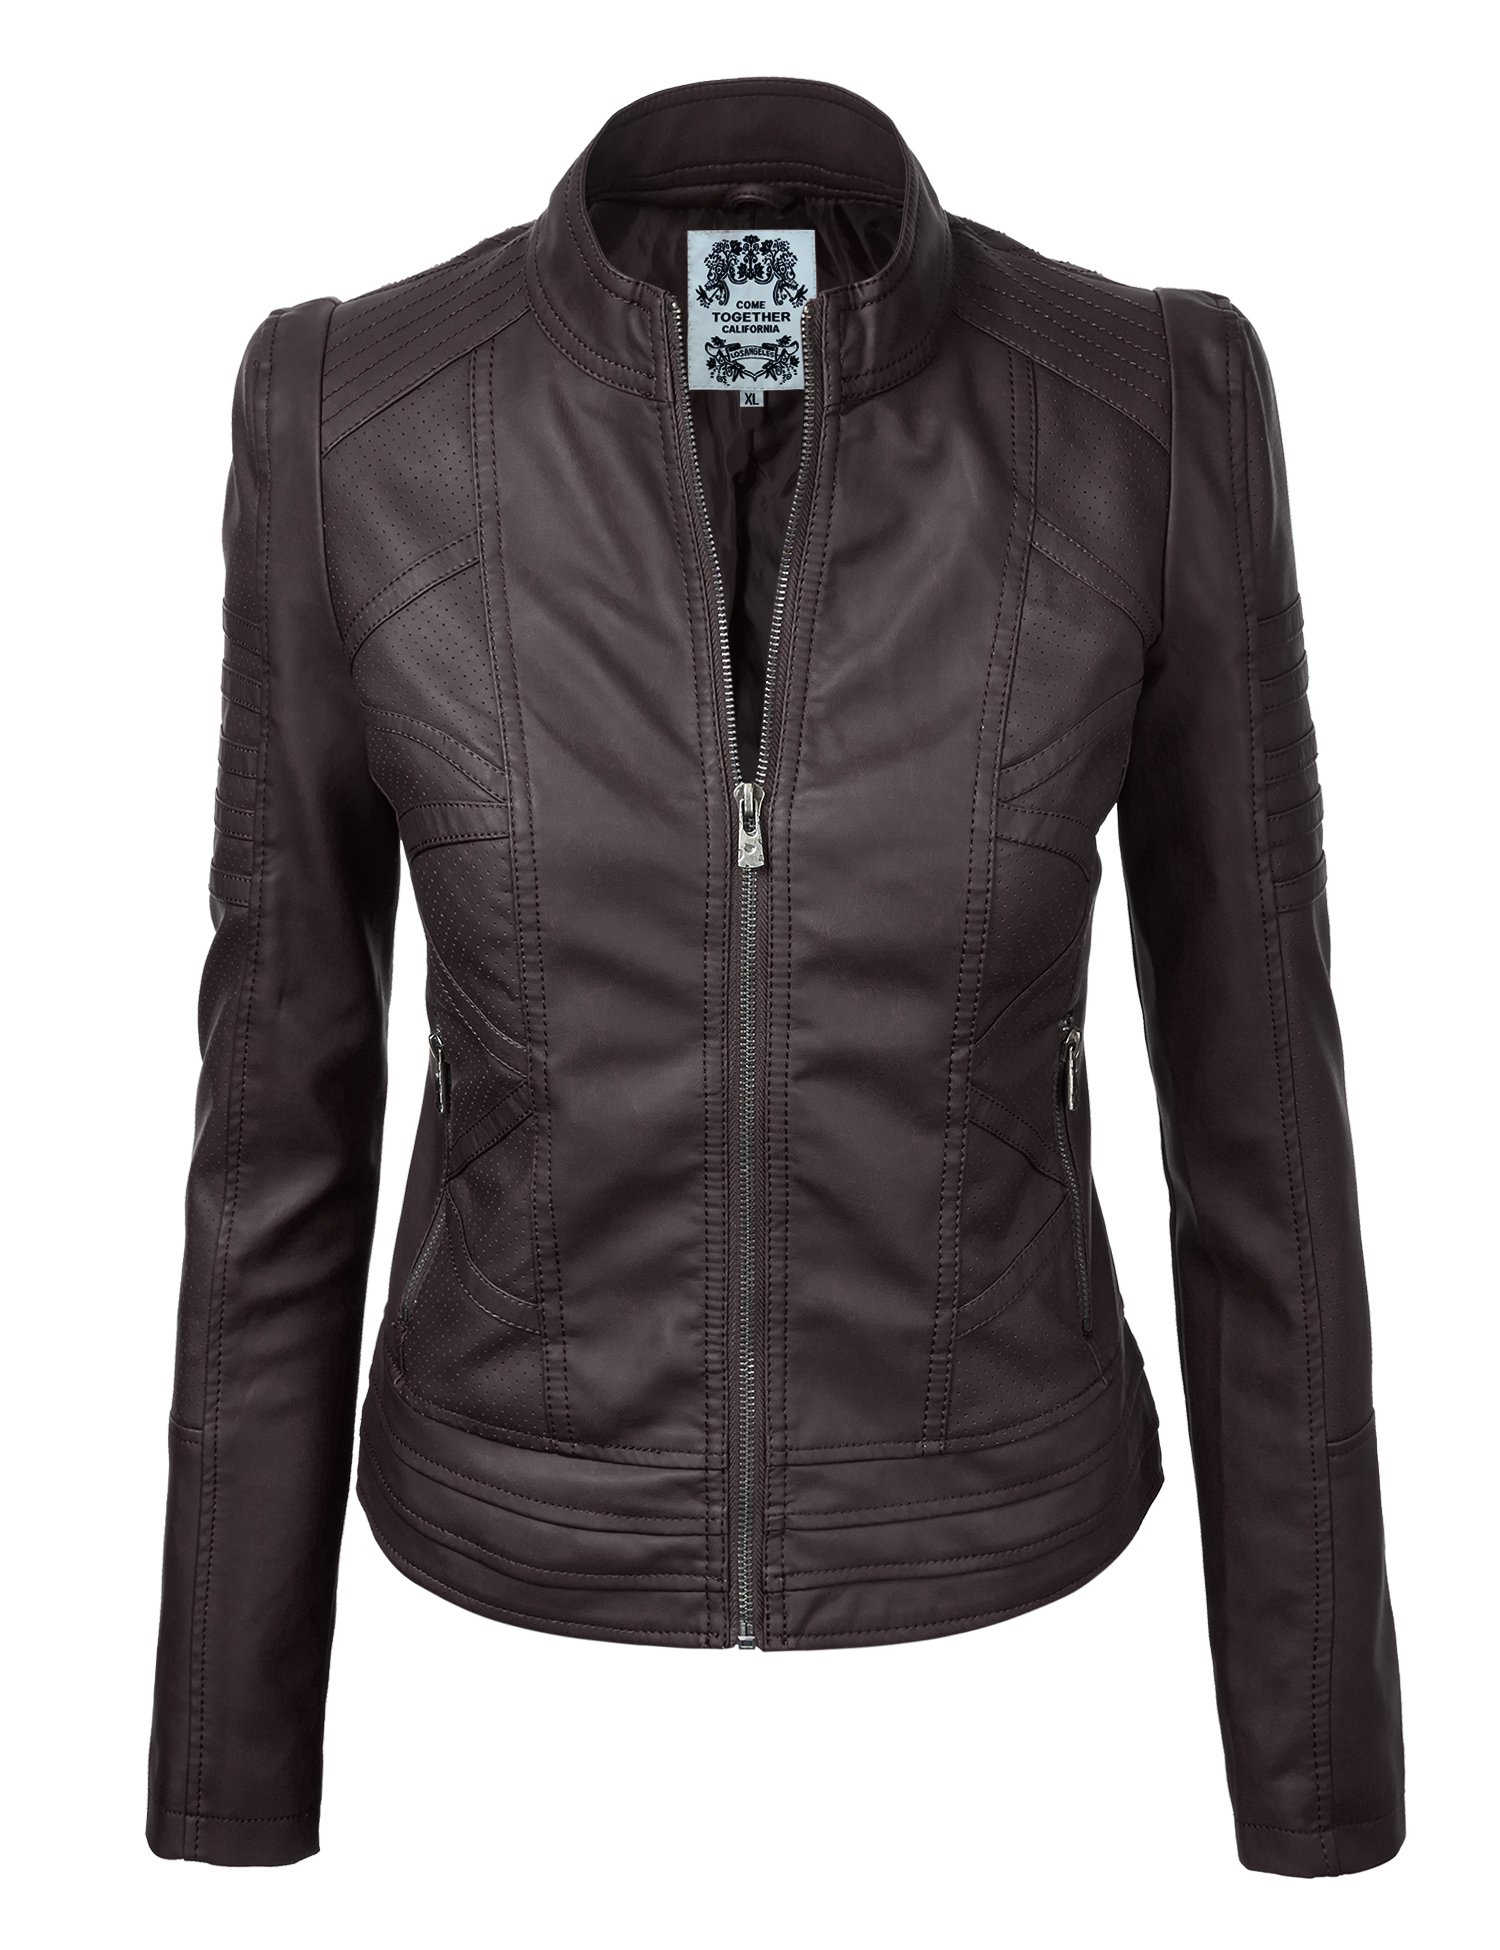 Come Together California WJC746 Womens Vegan Leather Motorcycle Jacket L Coffee by Come Together California